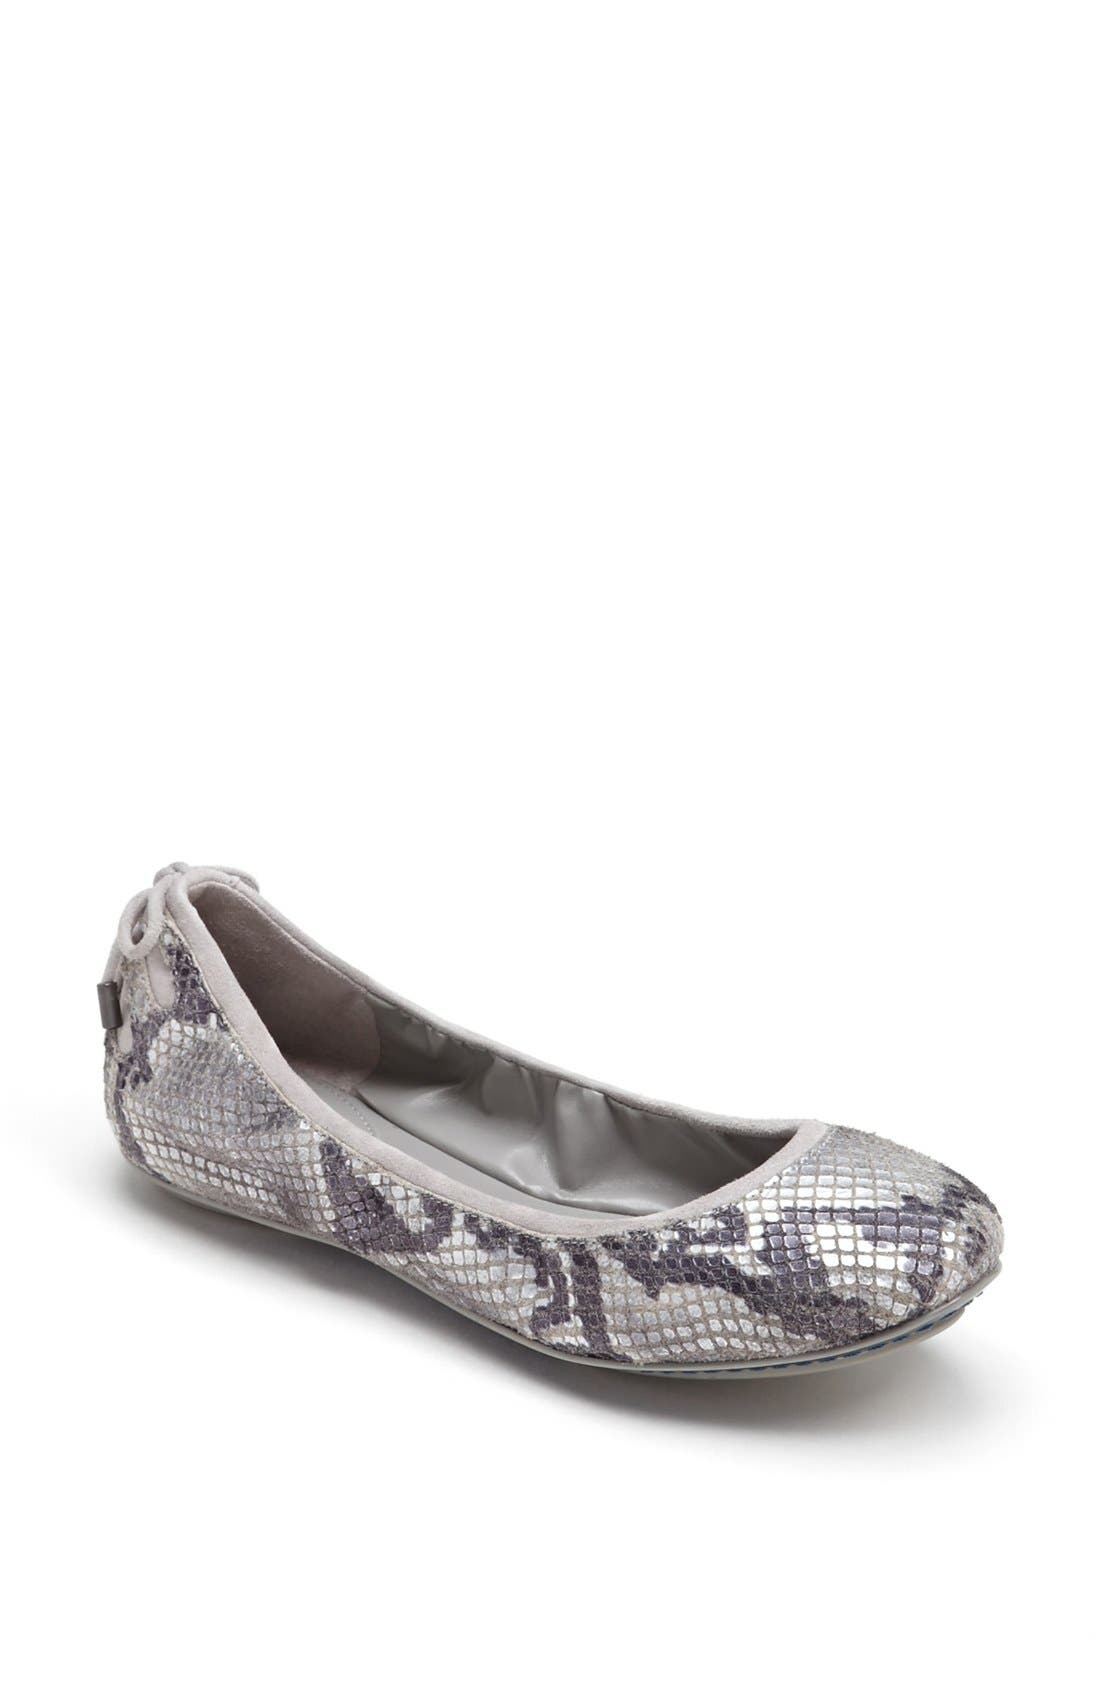 ,                             Maria Sharapova by Cole Haan 'Air Bacara' Flat,                             Main thumbnail 26, color,                             045